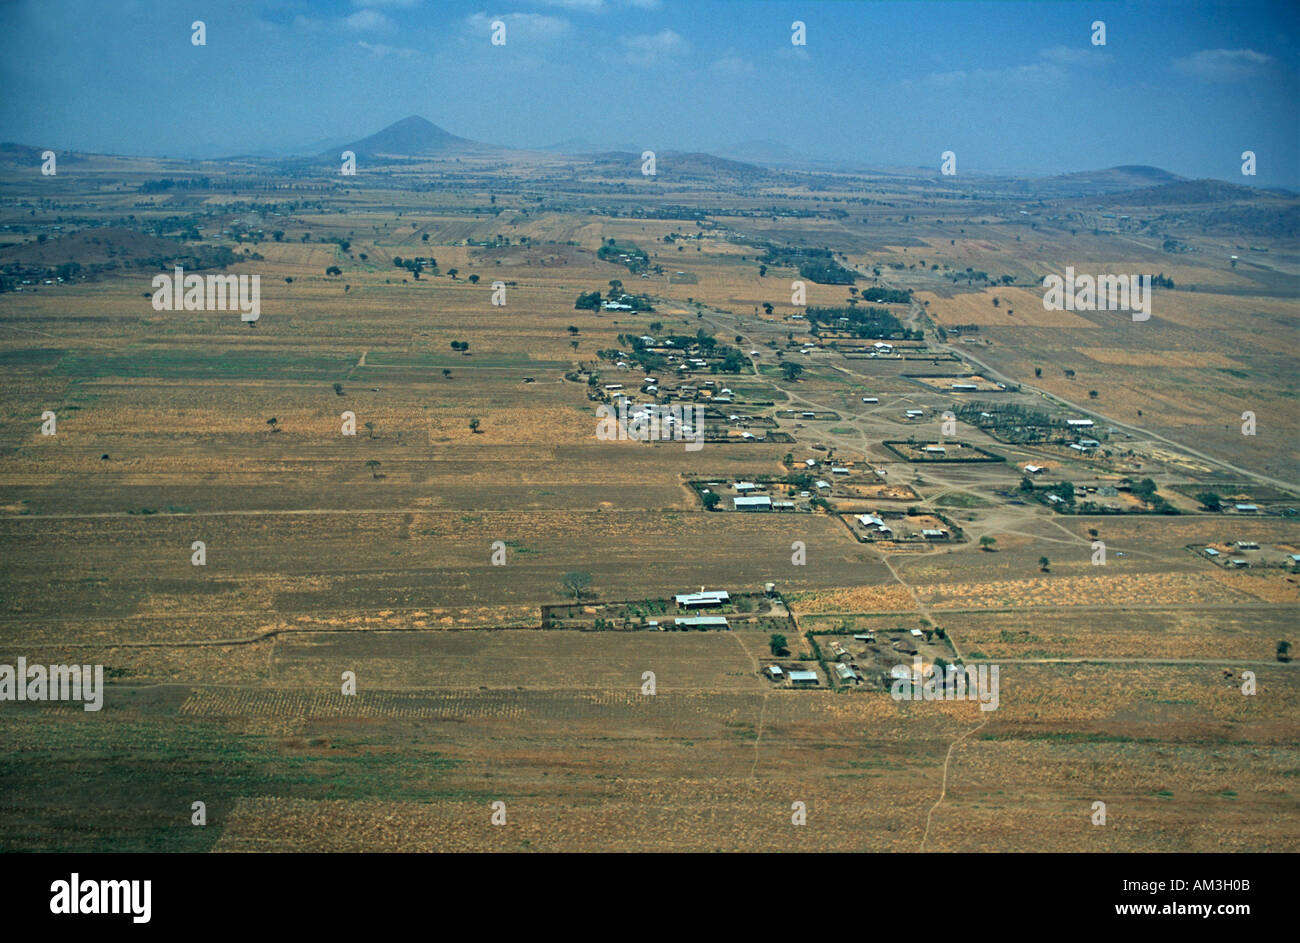 Aerial view of Masai lands on the outskirts of Arusha Approaching Arusha airport by 13 seater Cessna Tanzania East Africa - Stock Image